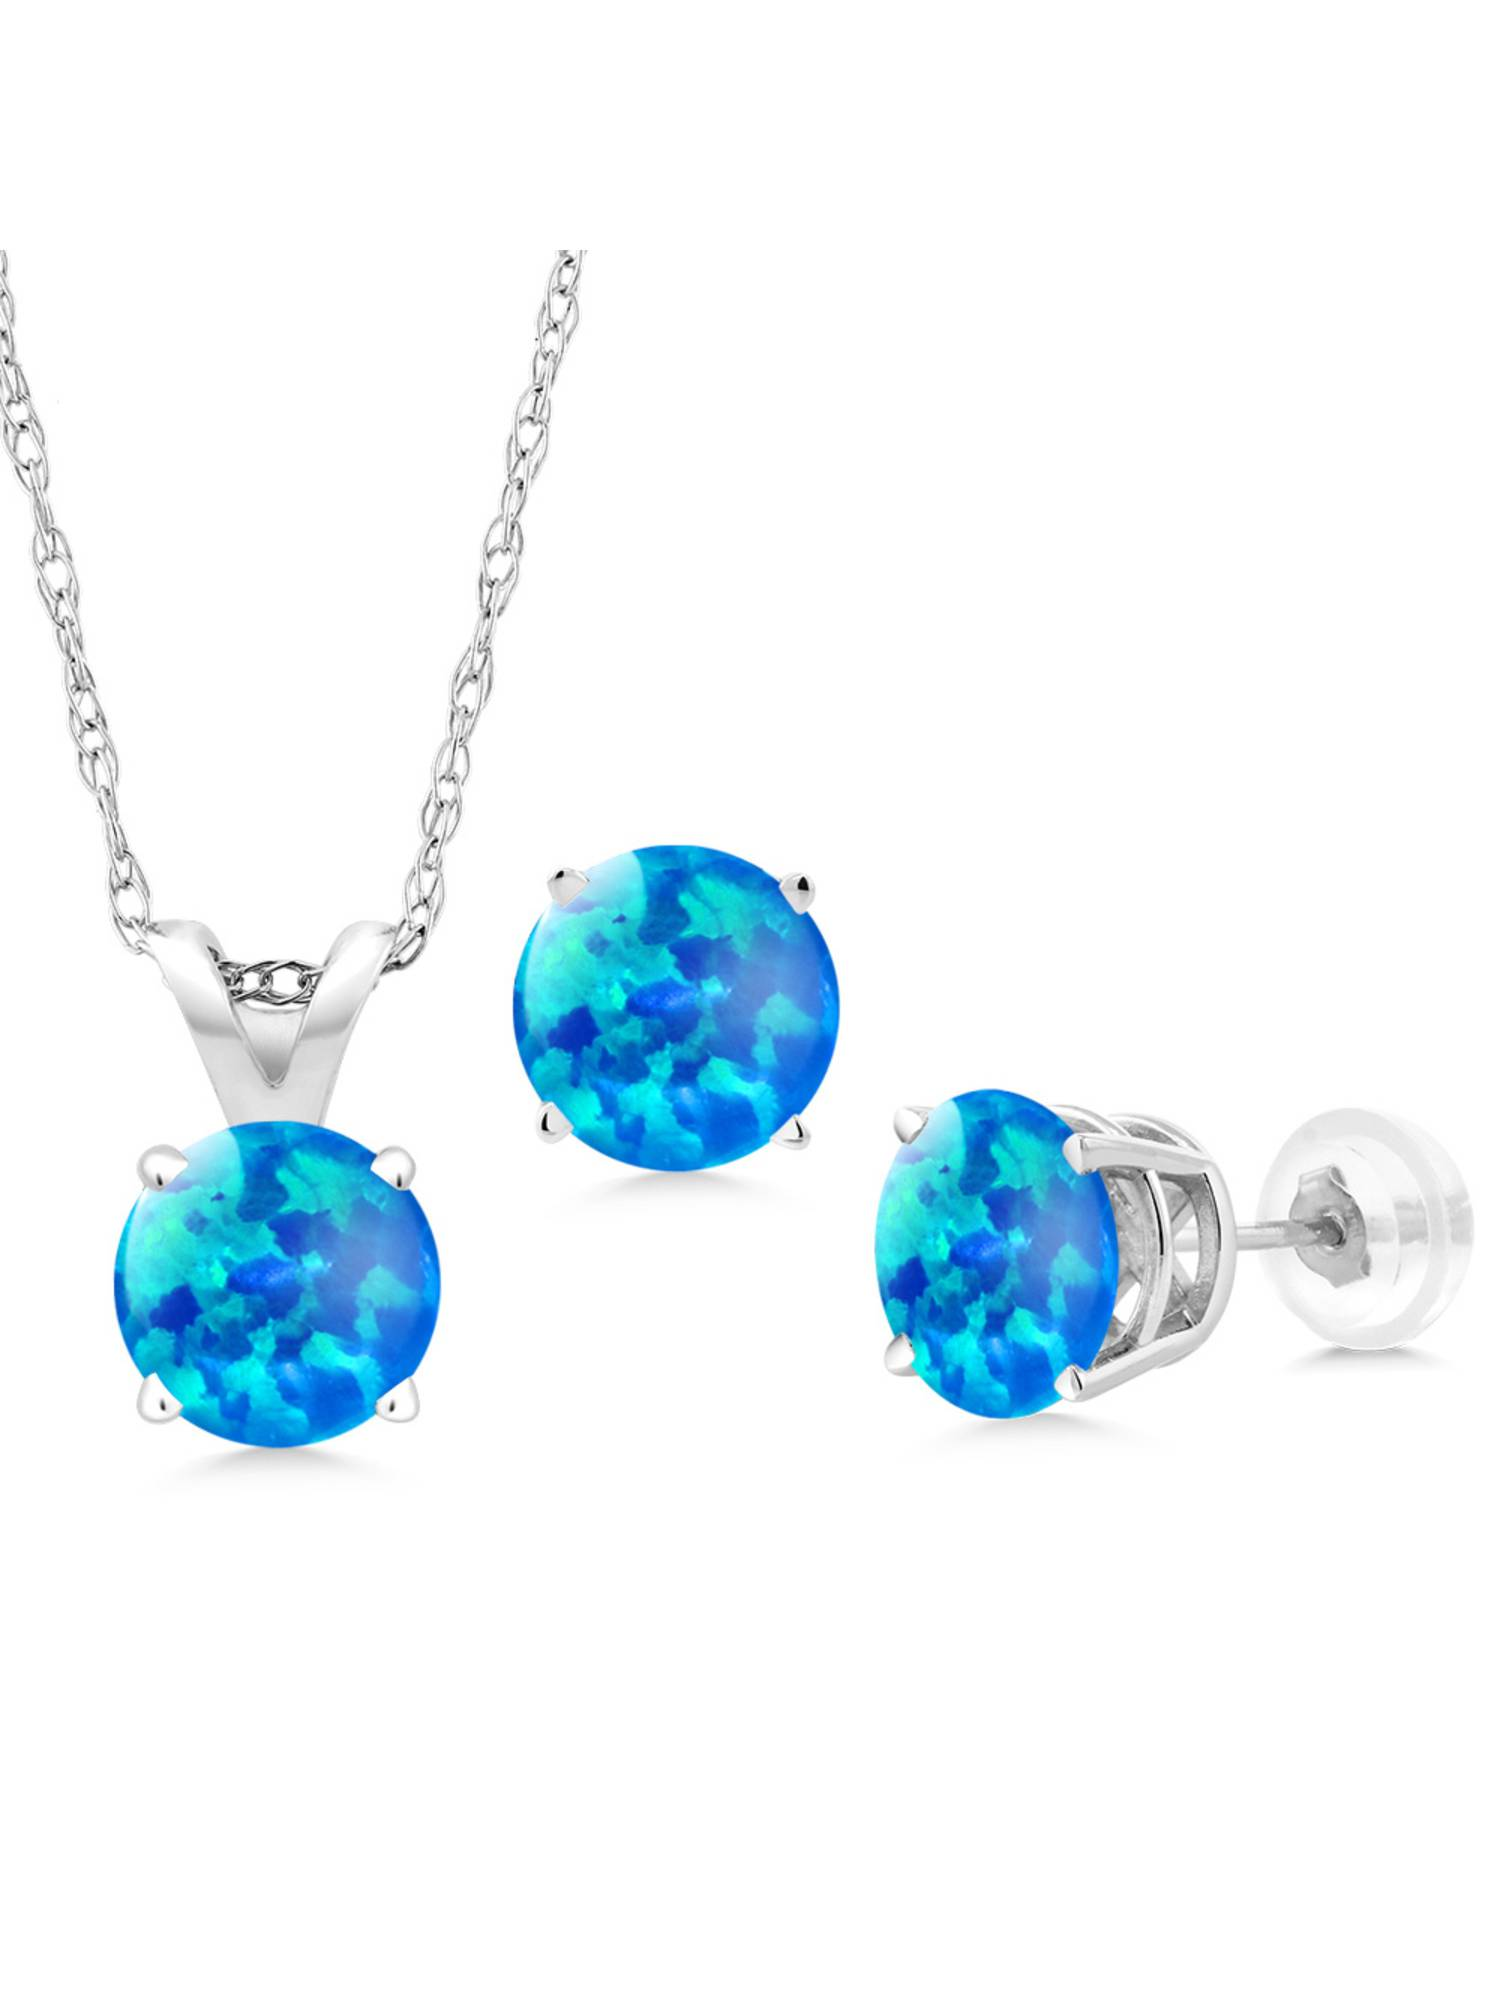 1.50 Ct Cabochon Simulated Opal 14K White Gold Pendant Earrings Set With Chain by